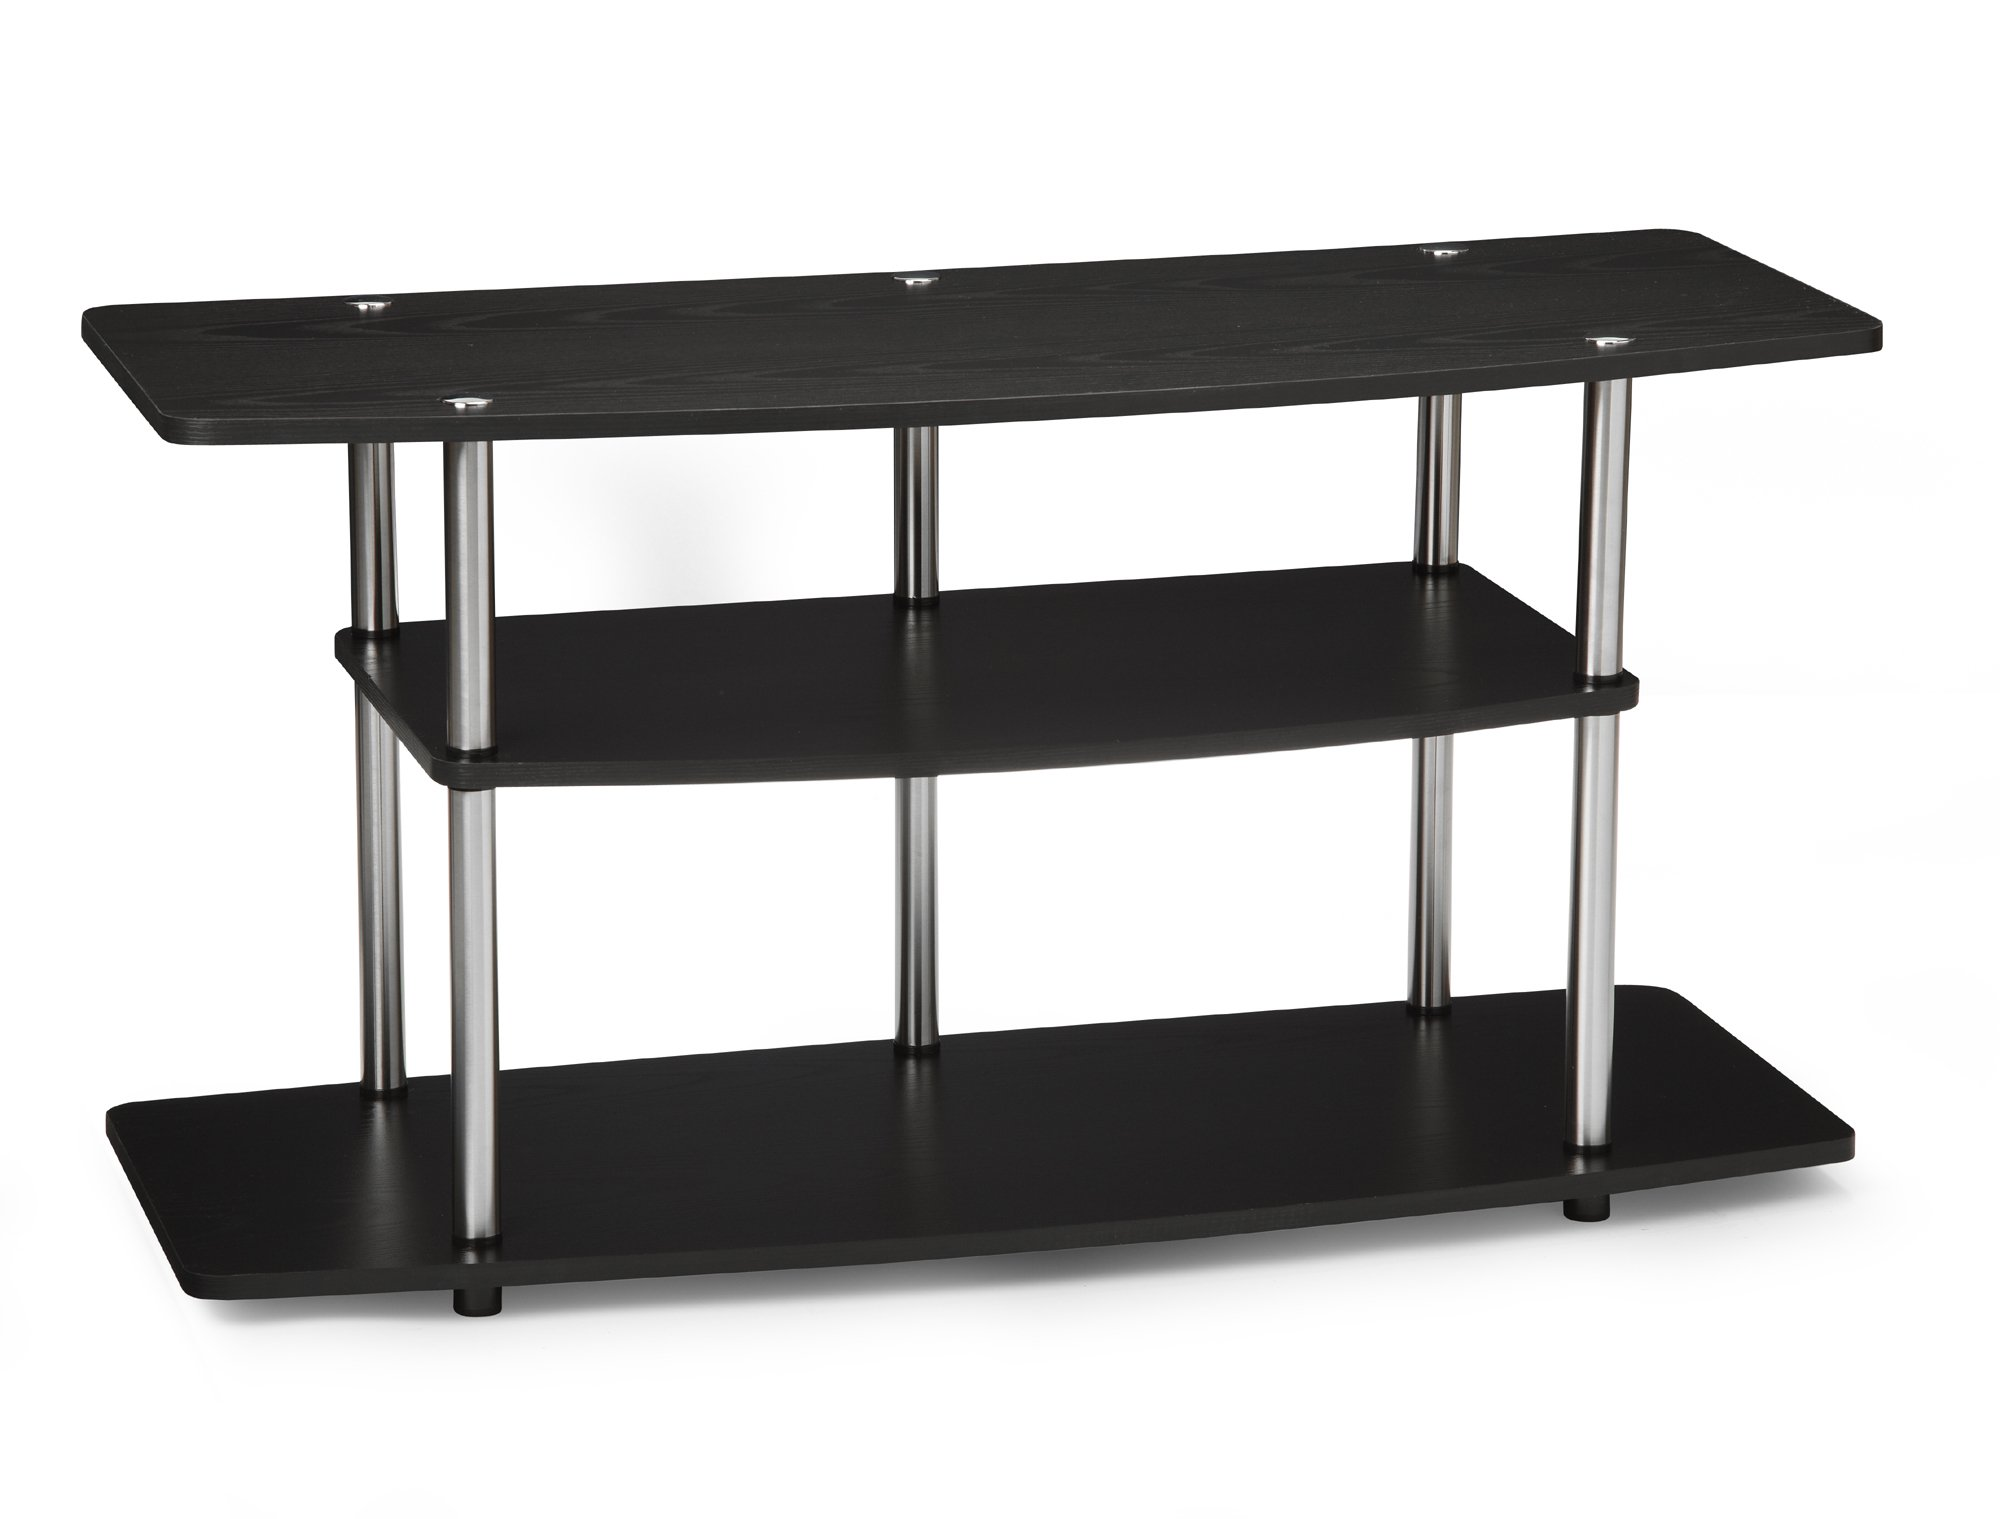 Convenience Concepts Designs2Go 3-Tier Wide TV Stand, Black by Convenience Concepts